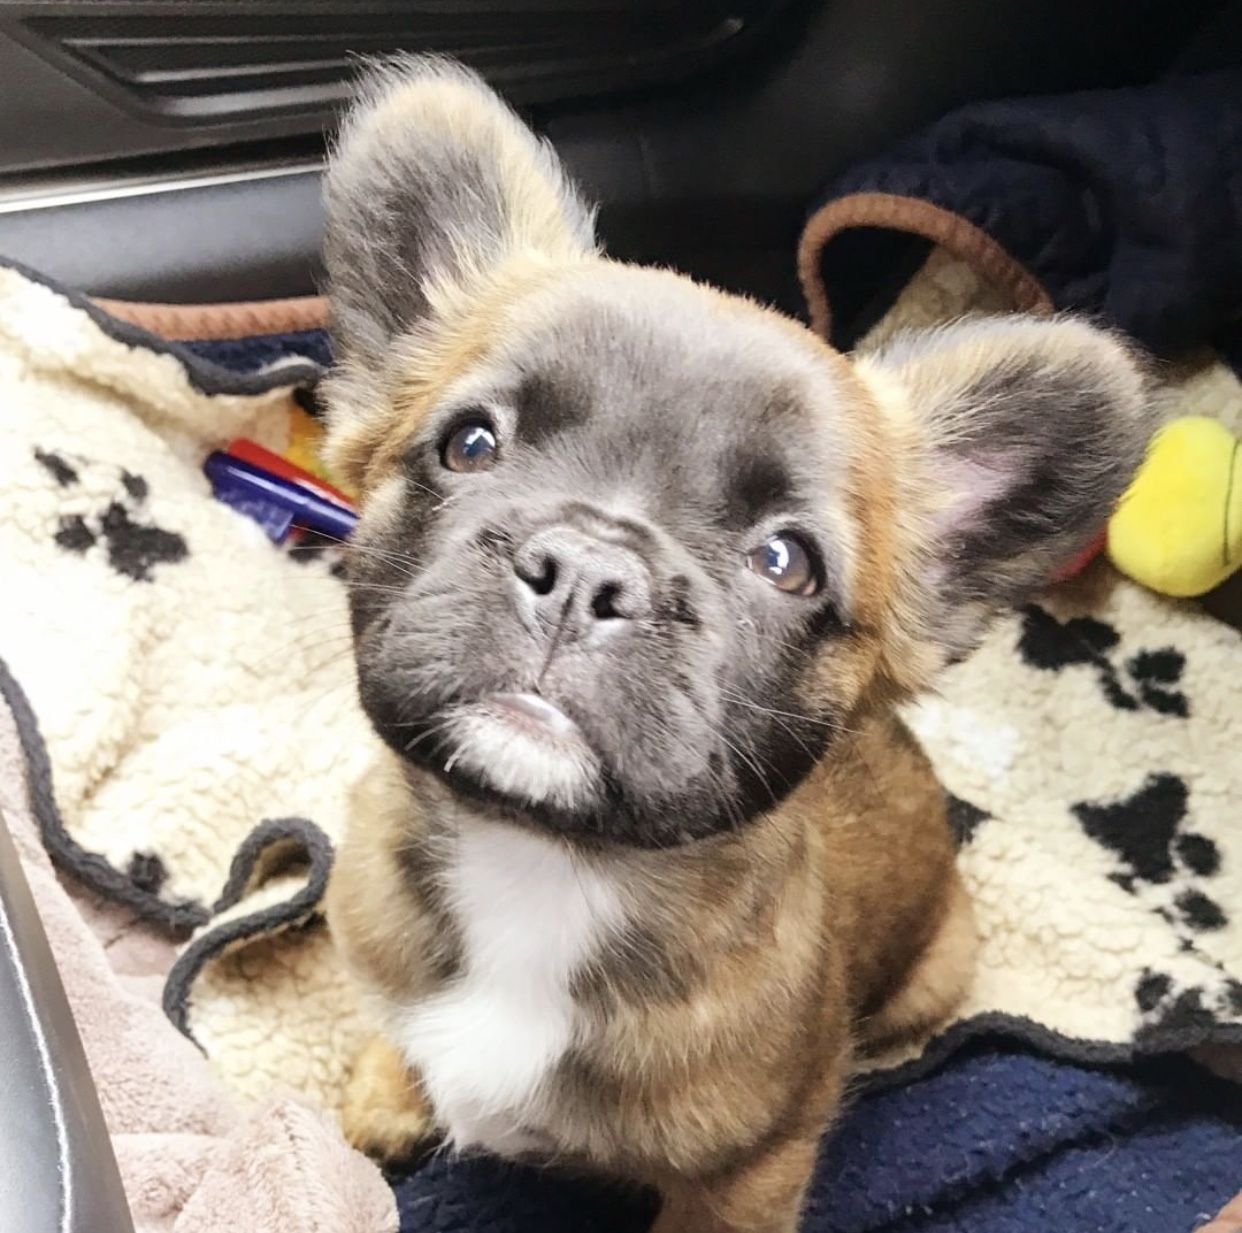 Peaches Is A Long Haired Kennel Club Registered Purebred French Bulldog She Is The Result Of Her Super Cute Puppies Cute French Bulldog French Bulldog Puppies